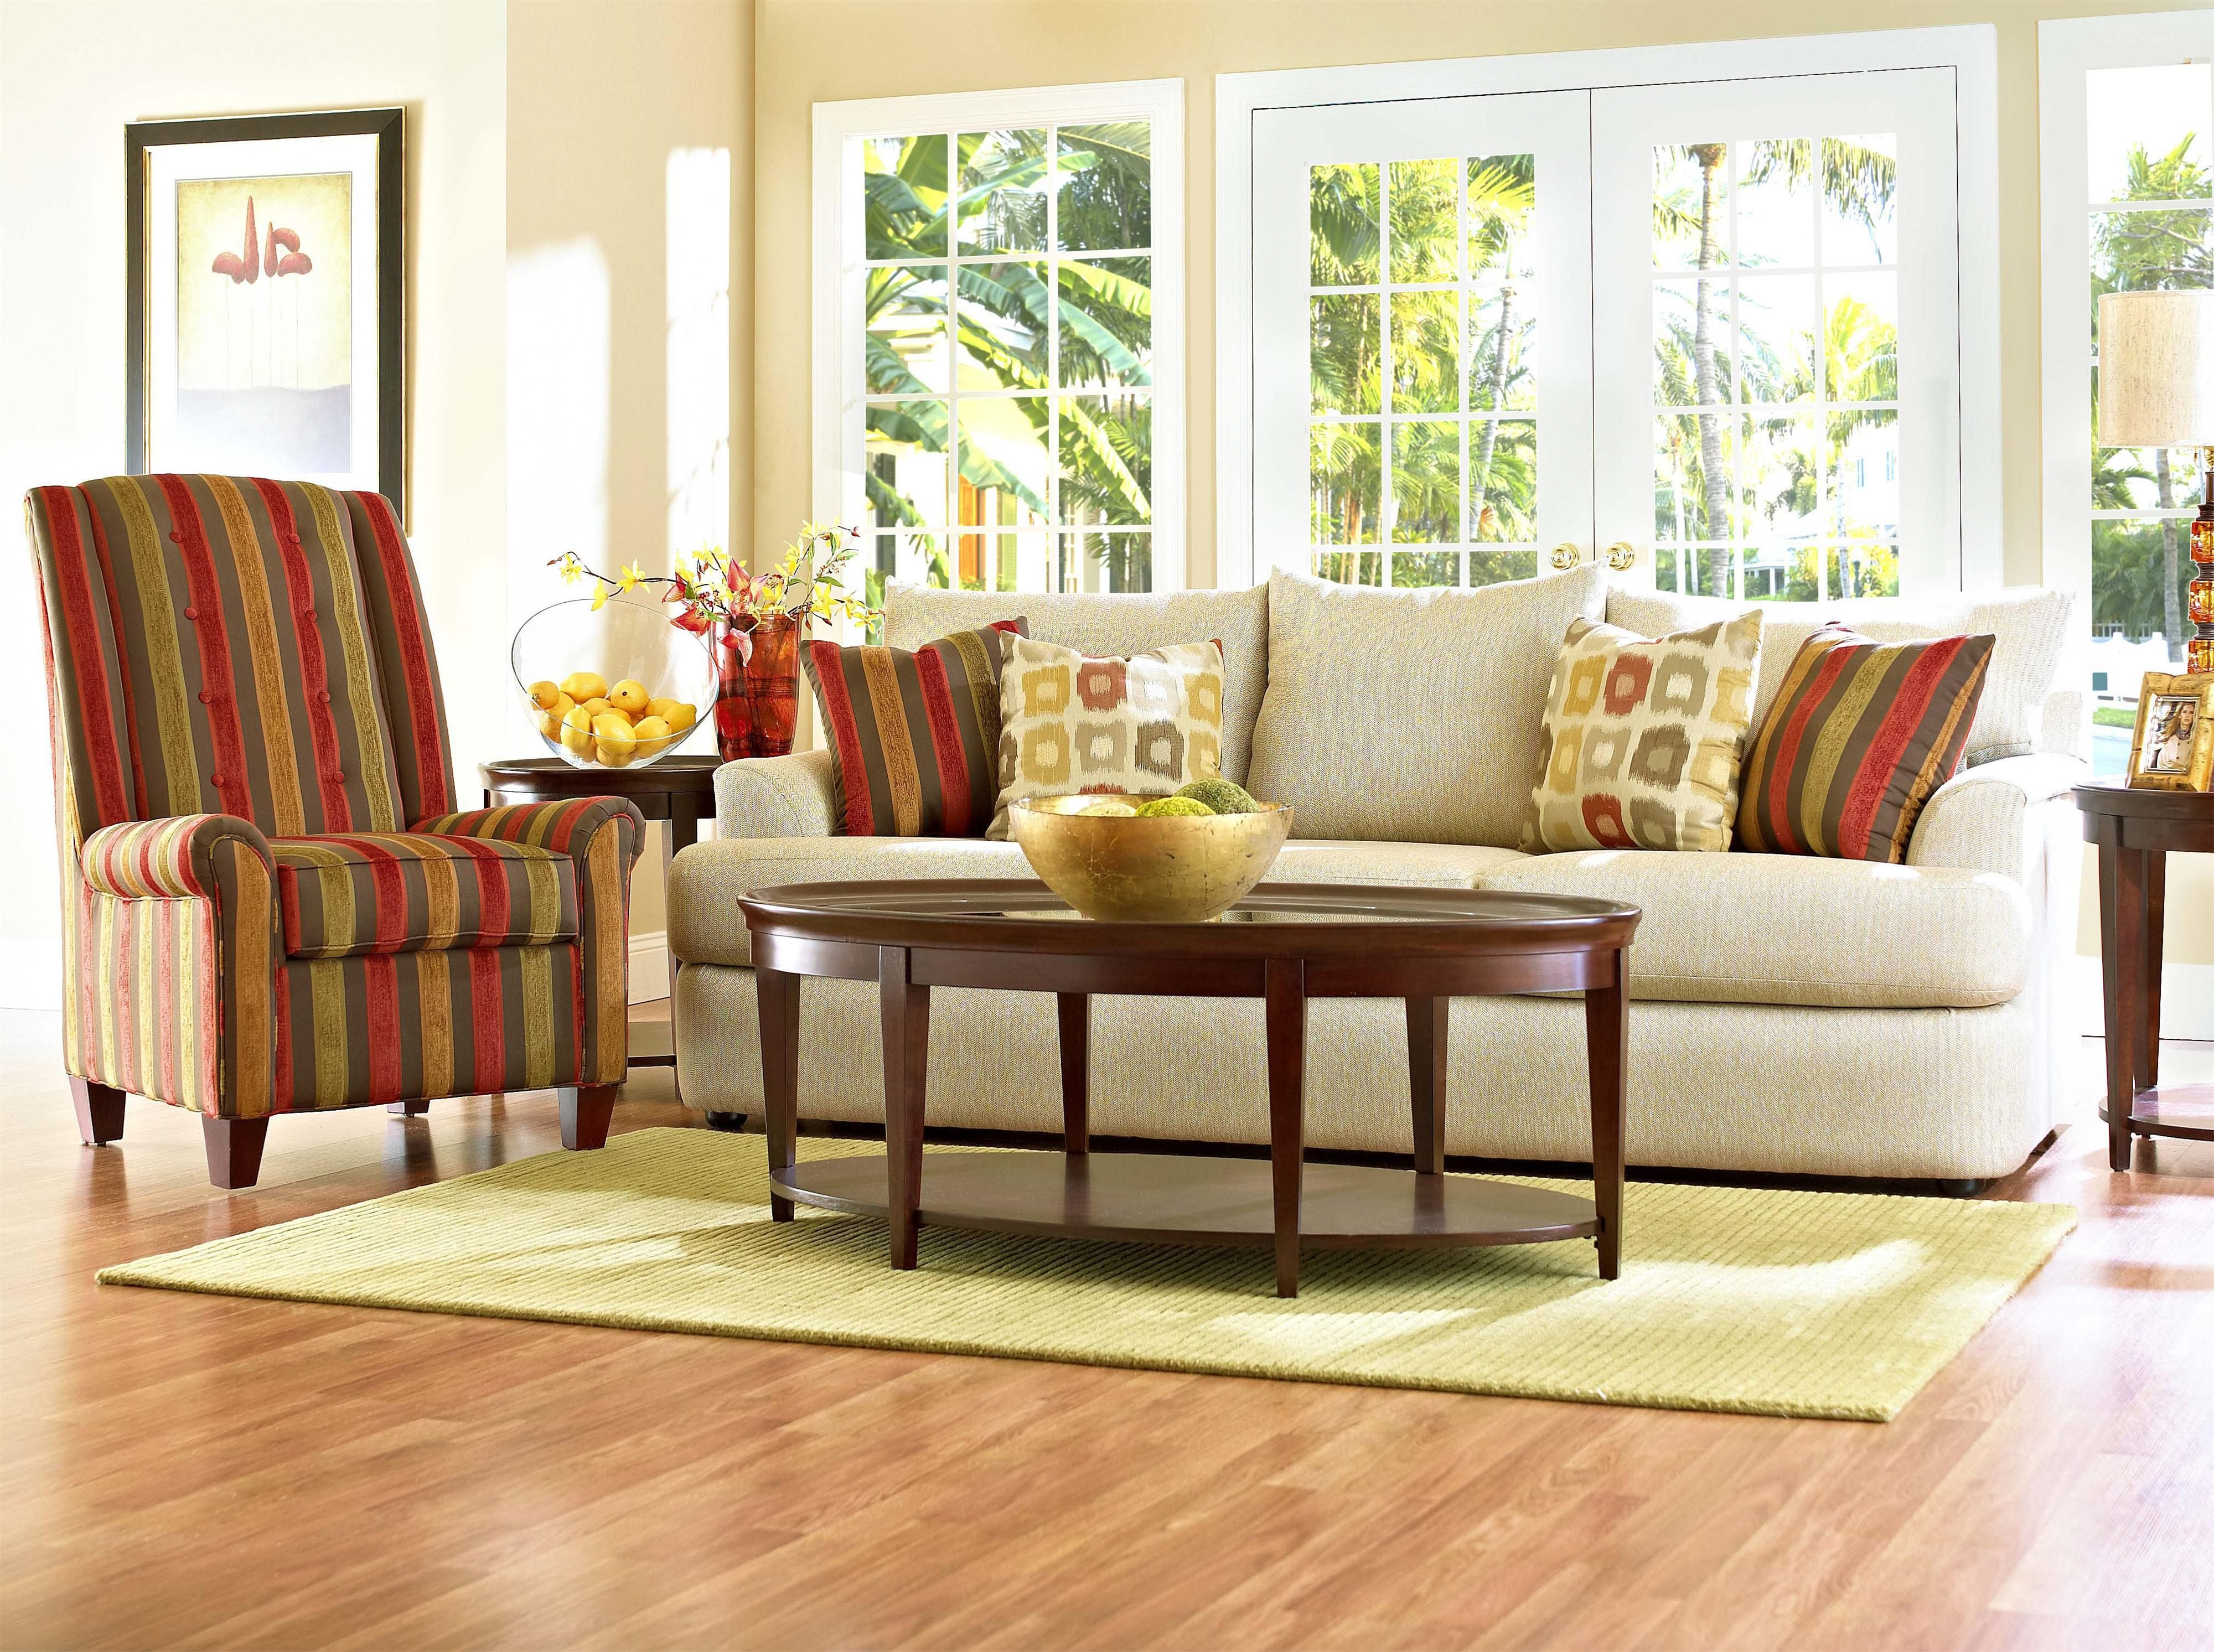 Ideas for casual formal living rooms living rooms for Casual living room furniture ideas